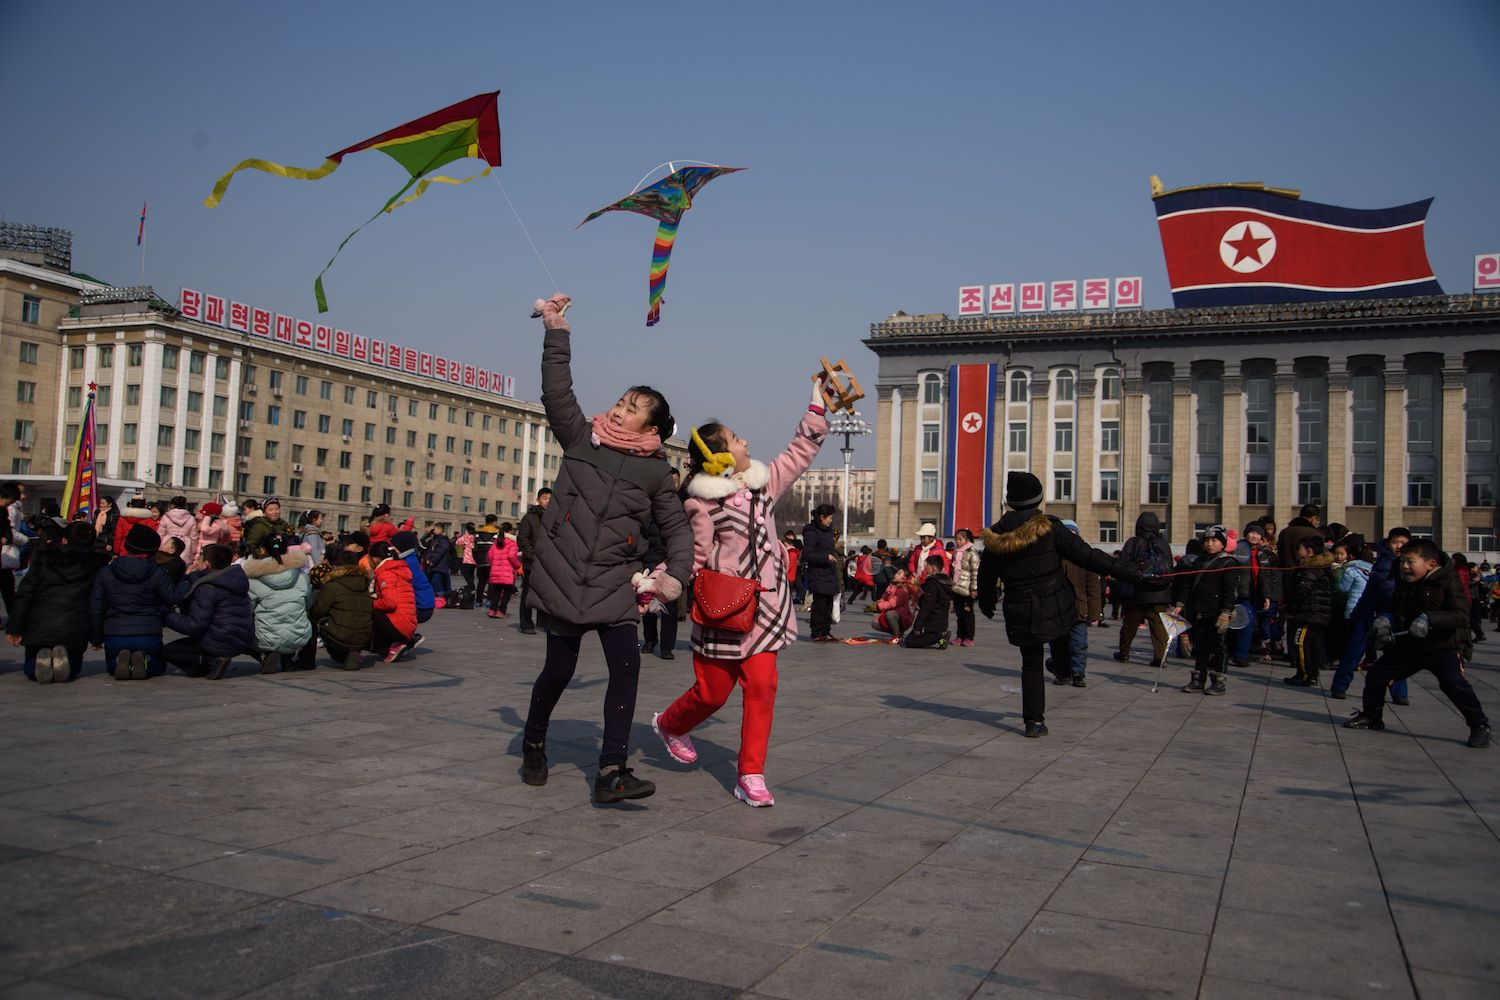 TOPSHOT - Children fly kites during Lunar New Year festivities on Kim Il Sung square in Pyongyang on February 16, 2018. / AFP PHOTO / KIM Won-Jin        (Photo credit should read KIM WON-JIN/AFP/Getty Images)